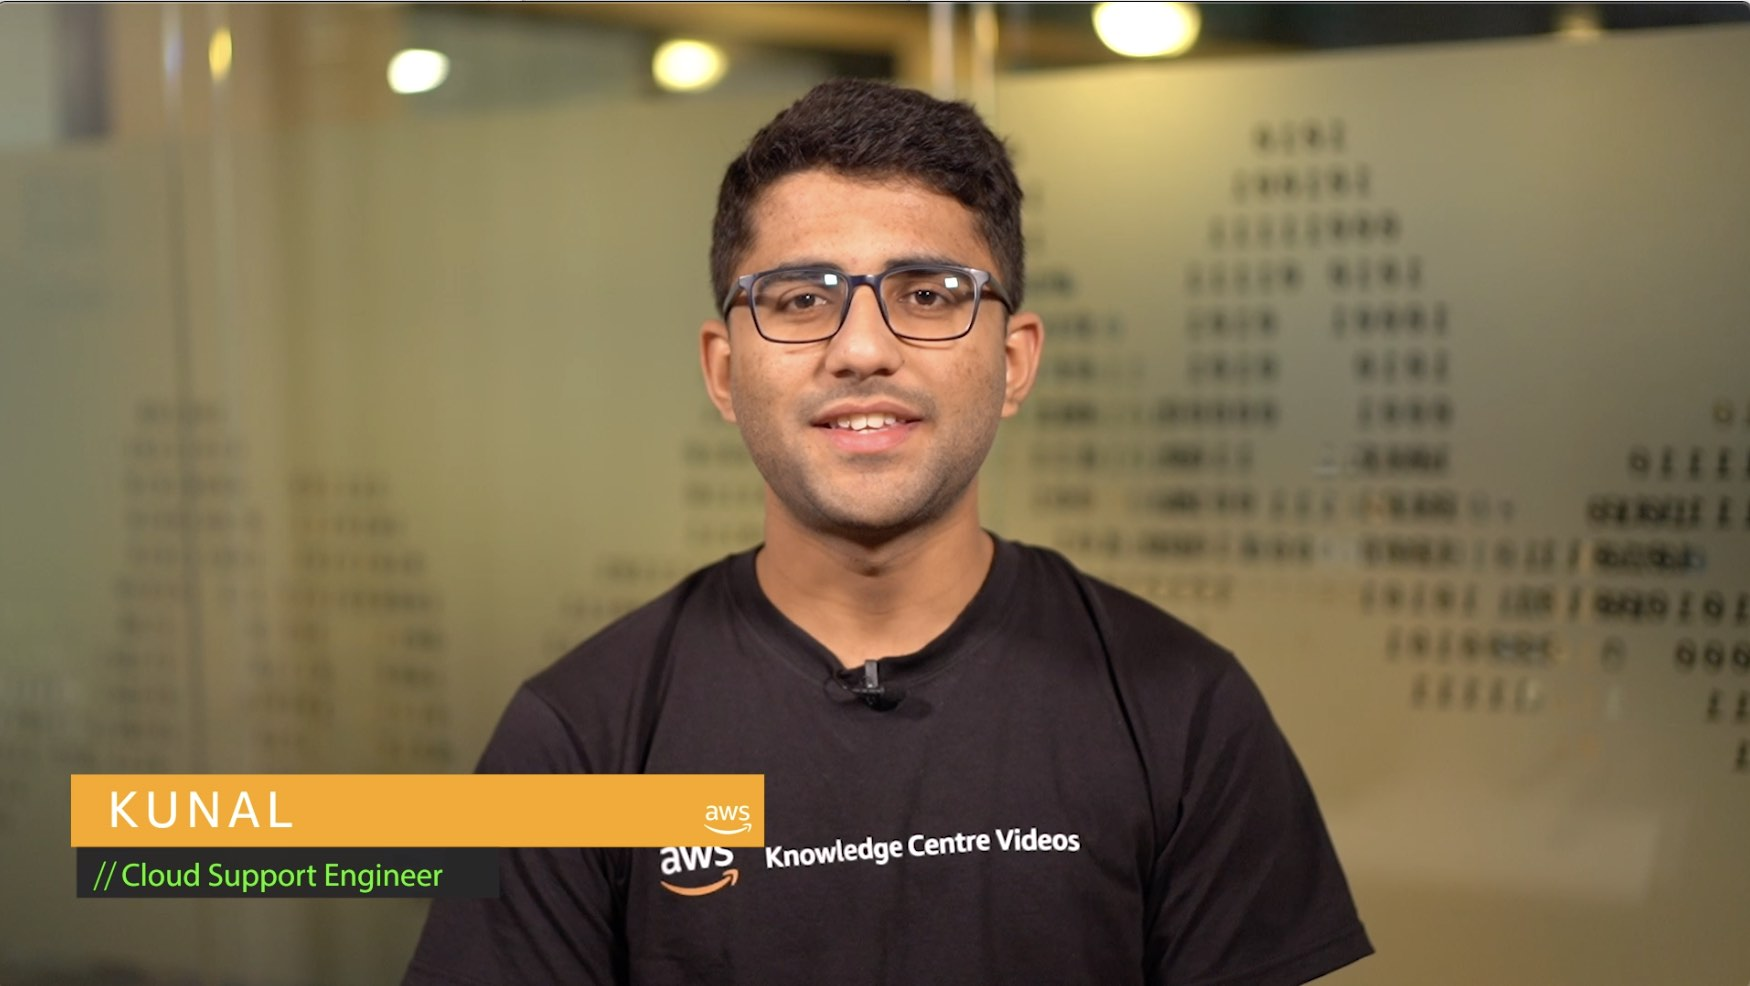 Watch Kunal's video to learn more